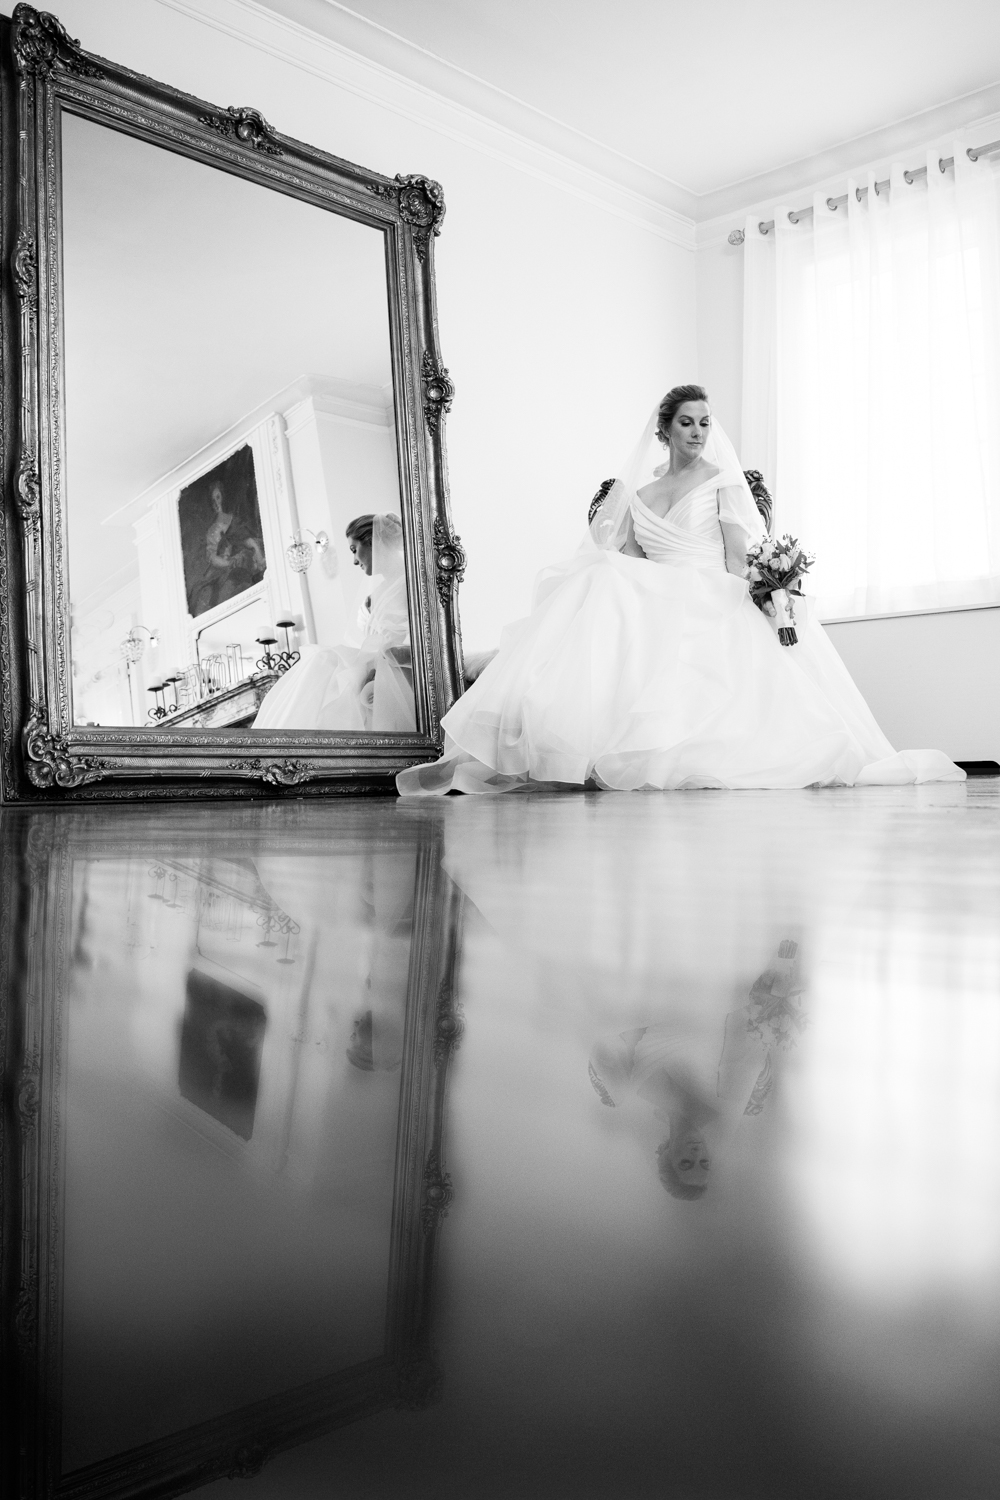 tall-mirror-brides-prep-ny.jpg